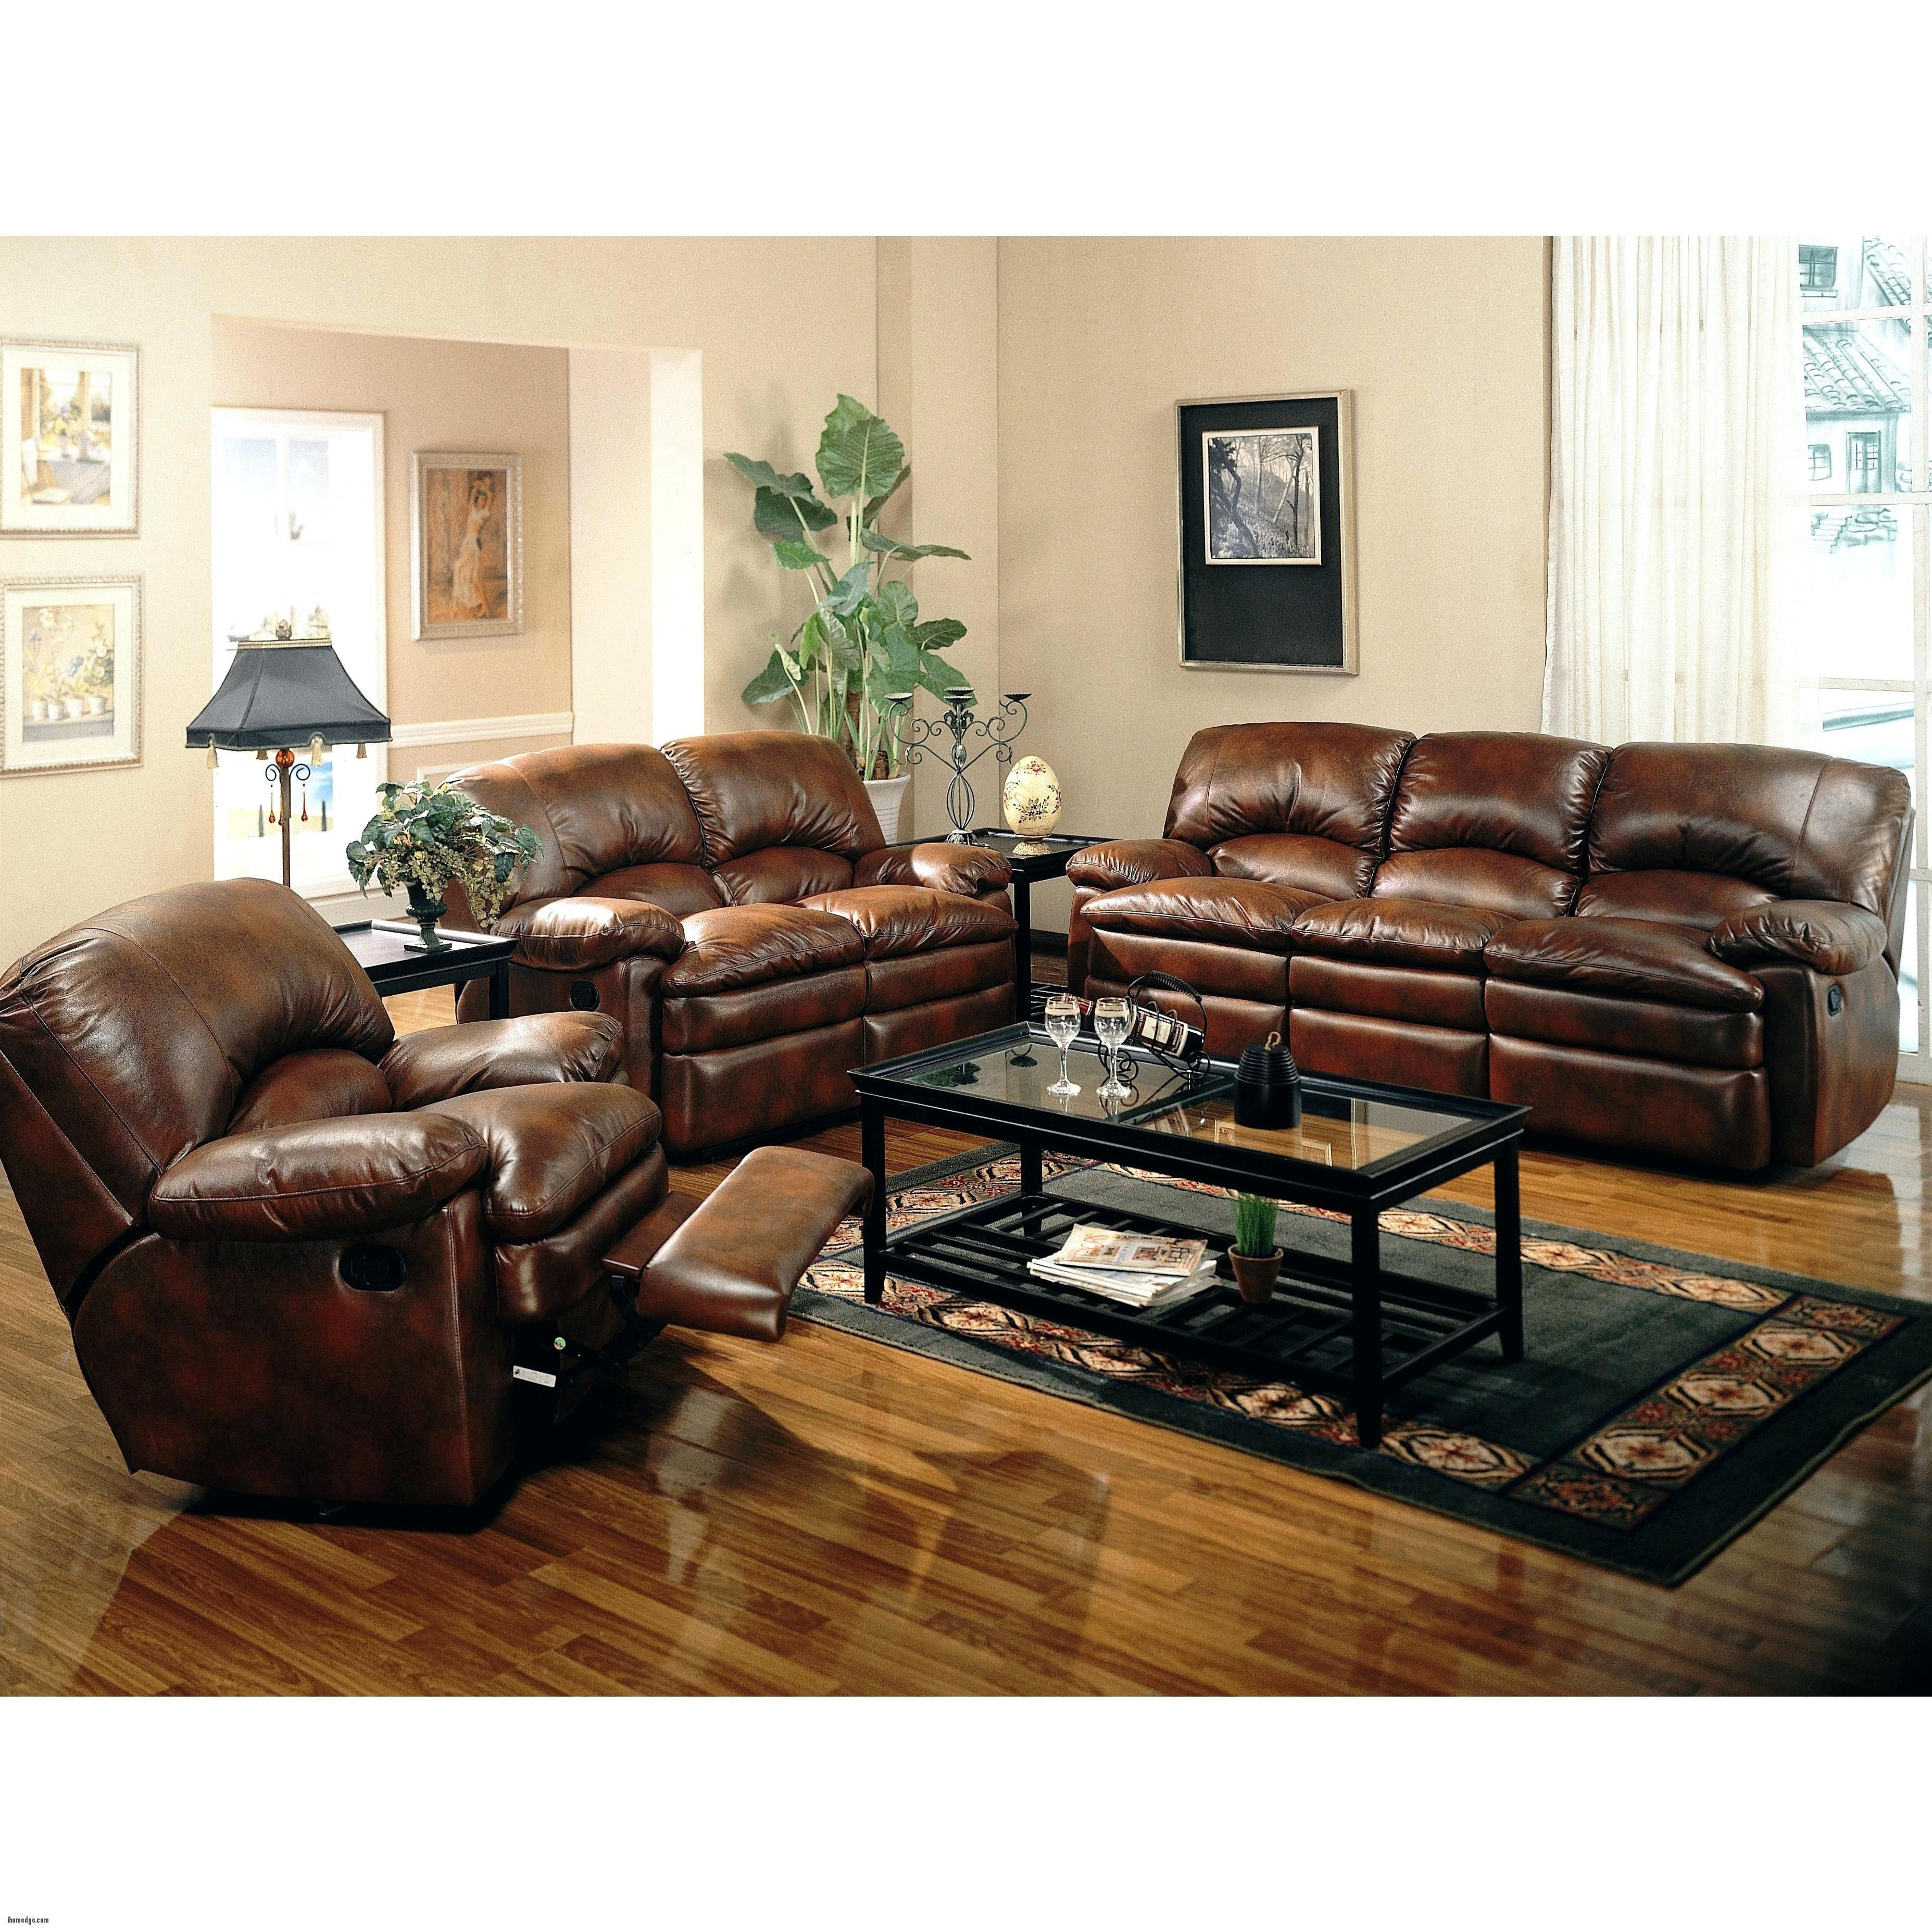 best Luxury Leather Reclining sofa Recliner Leather Sofas Futura